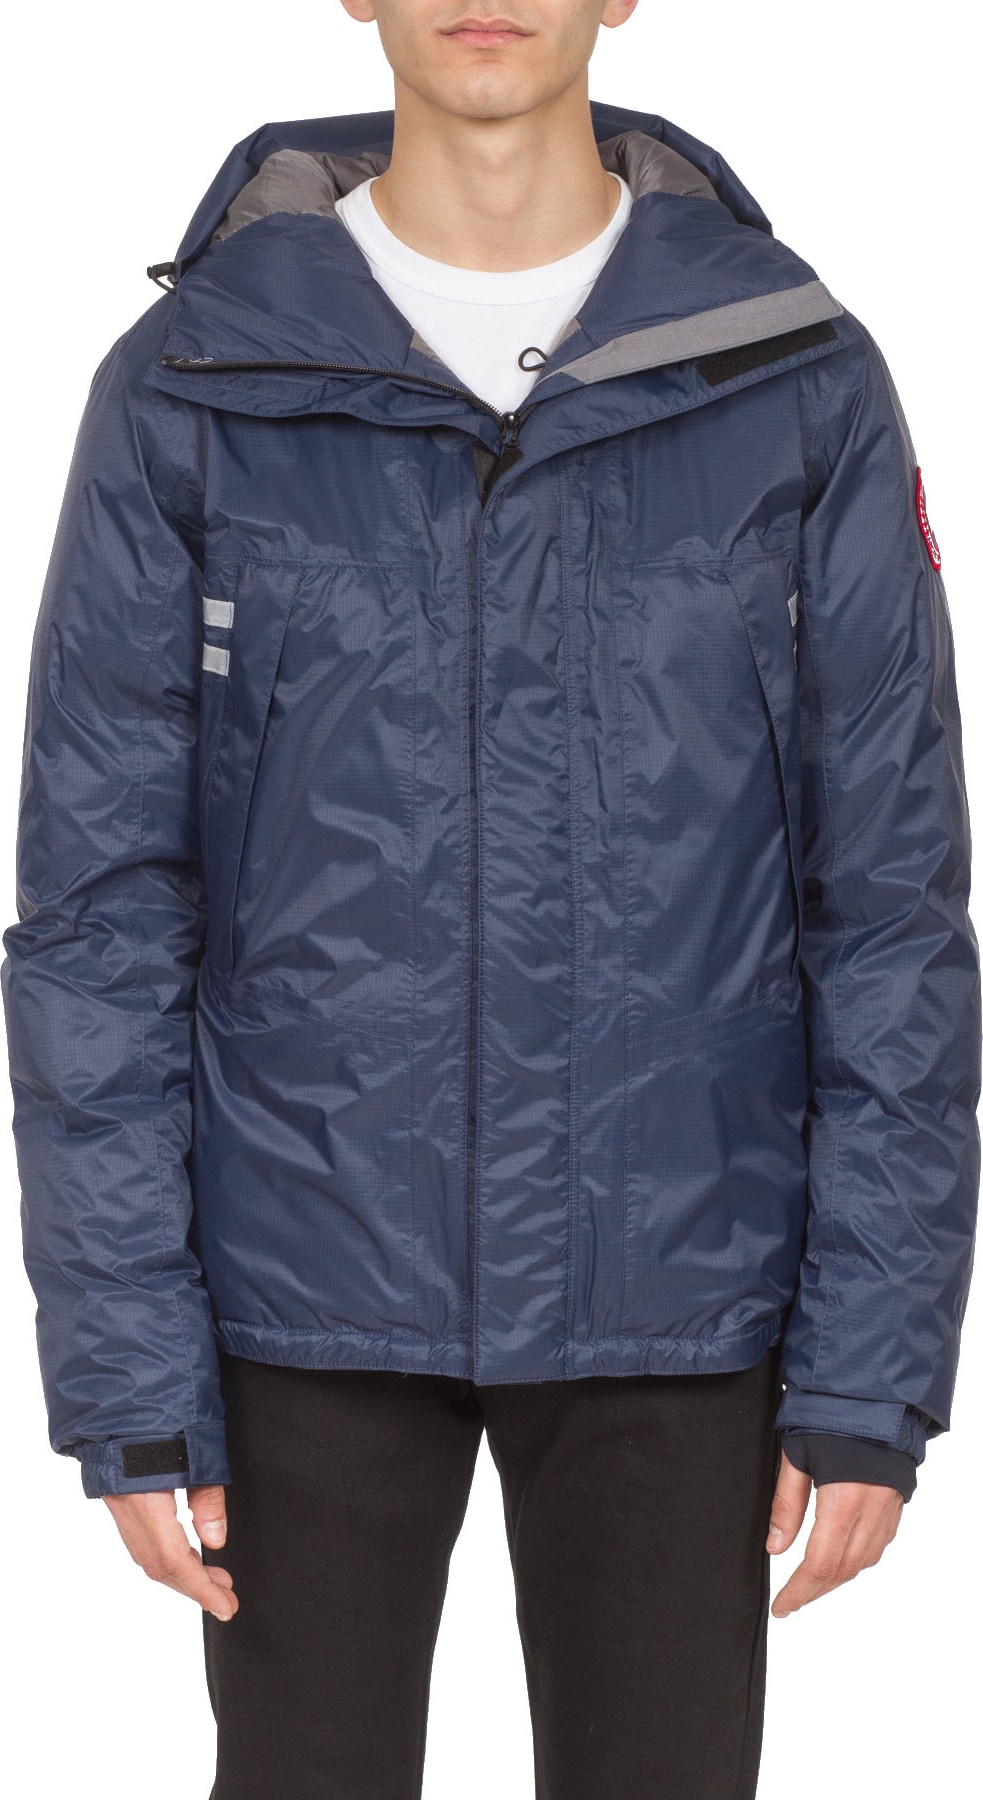 Canada Goose Mountaineer Jacket Men's